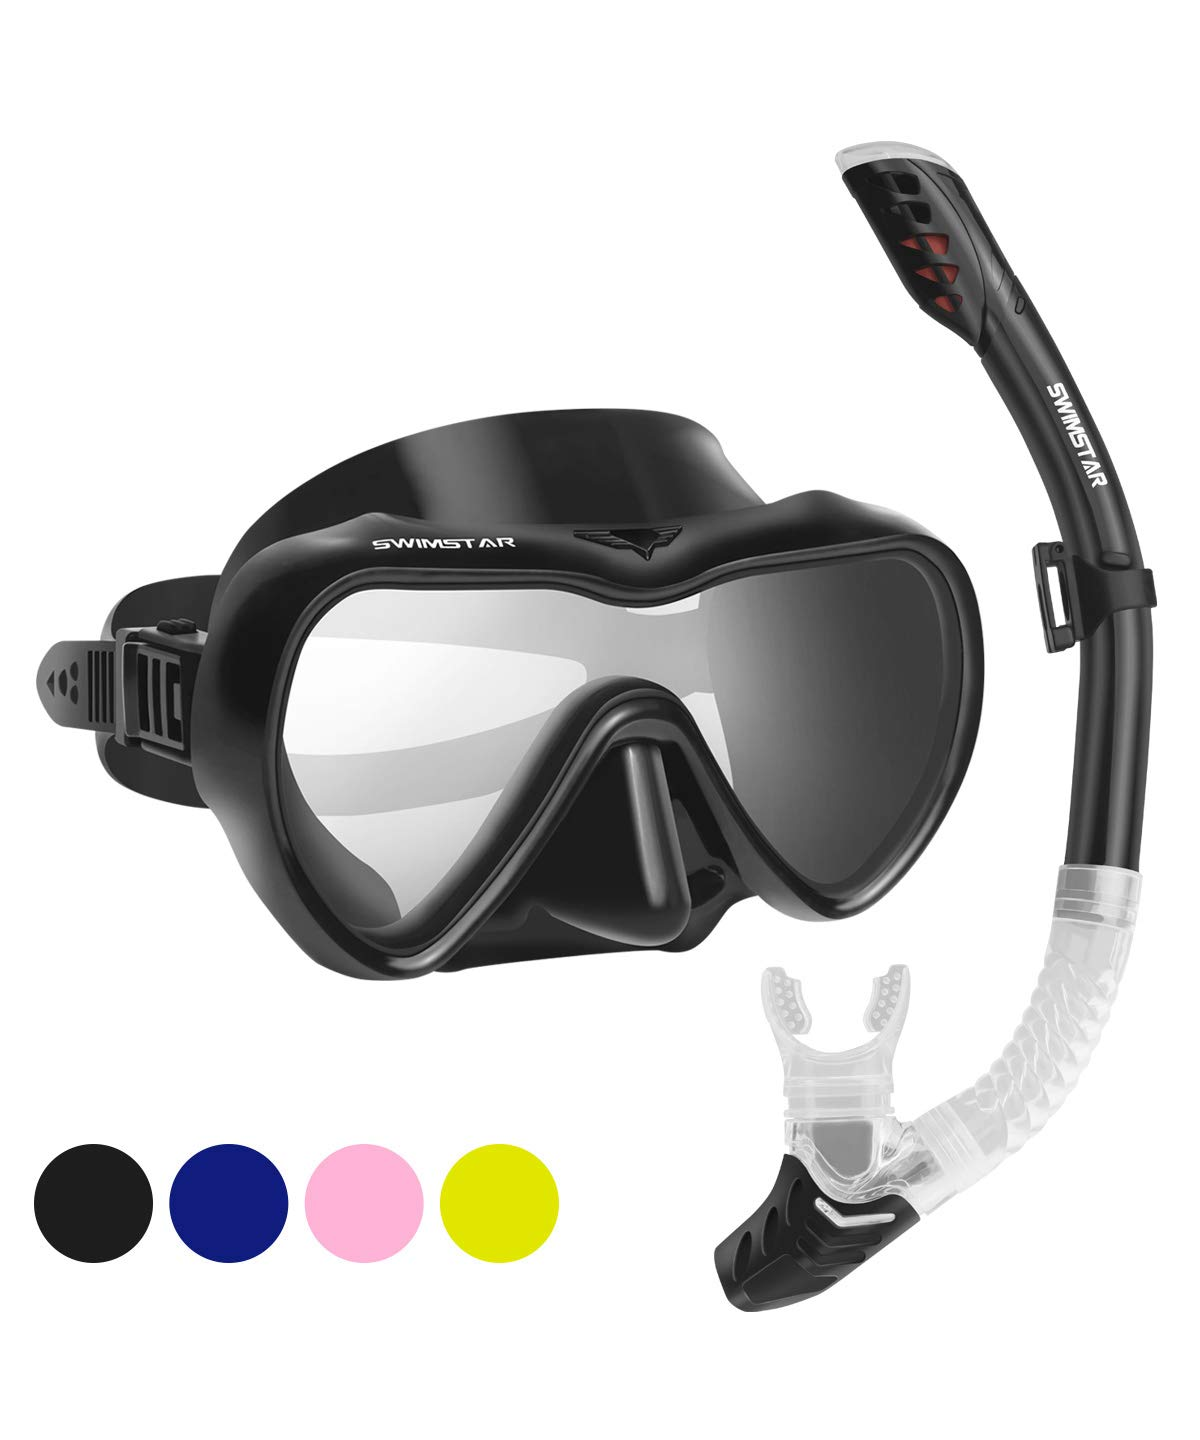 2019 Snorkel Set for Women and Men, Anti-Fog Tempered Glass Snorkel Mask for Snorkeling, Swimming and Scuba Diving, Anti Leak Dry Top Snorkel Gear Panoramic Silicone Goggle No Leak Black